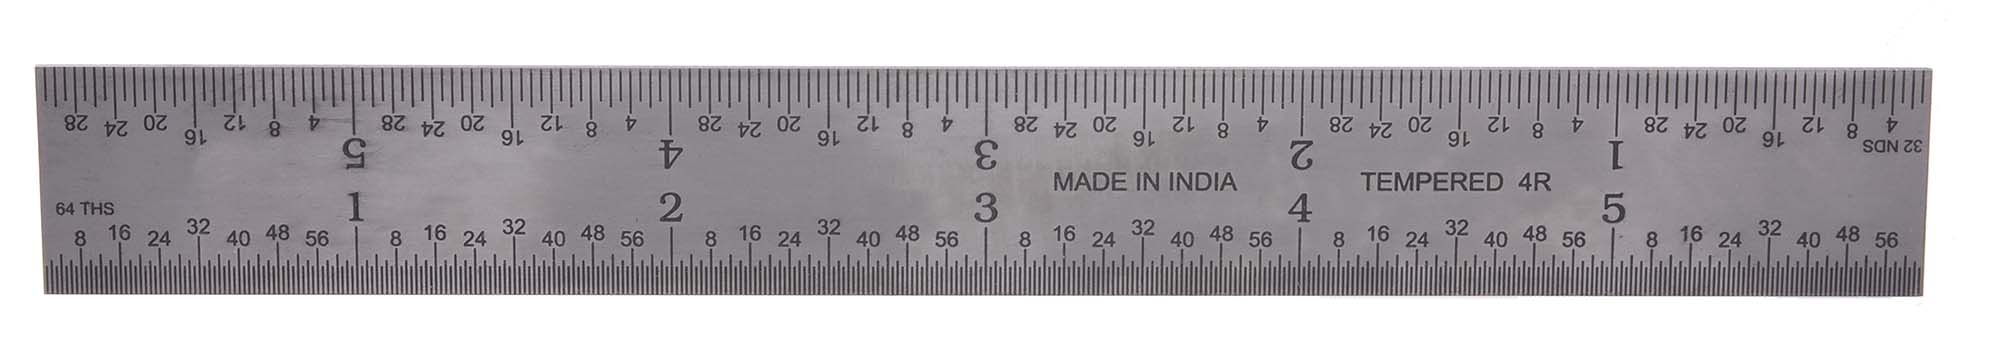 "RULF-12-4R   12"" 4R Flexible Steel Rule  - reads 32nds, 64ths, 8ths, 16ths."